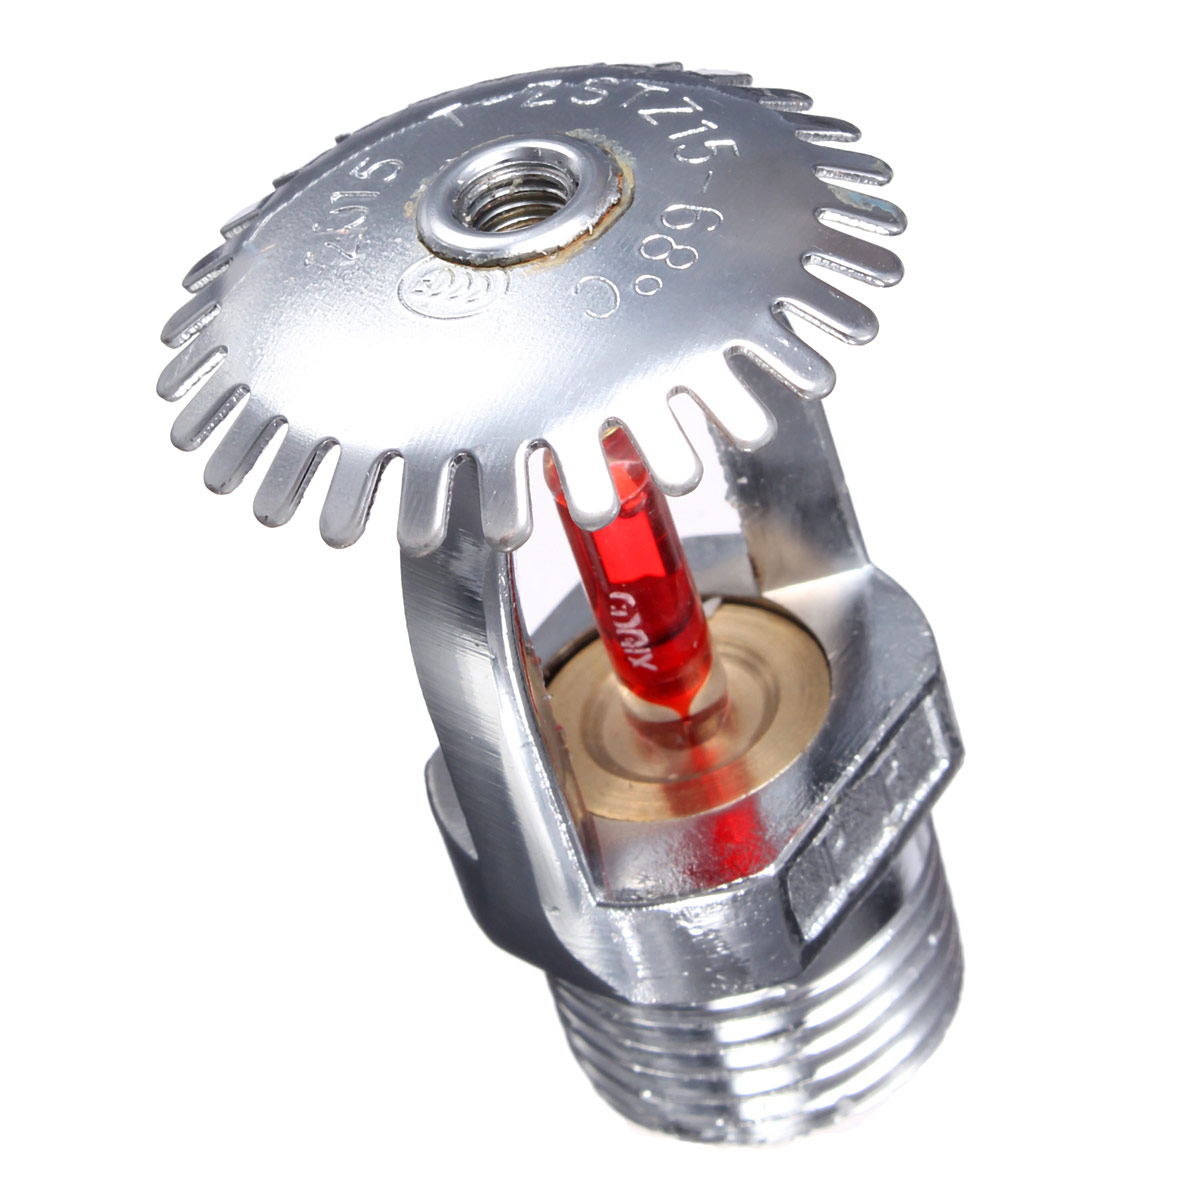 1pcs 5x3.4cm 68 Degrees Pendent For Fire Extinguishing System Protection Sprinkler Head New Pendent Sprinklers